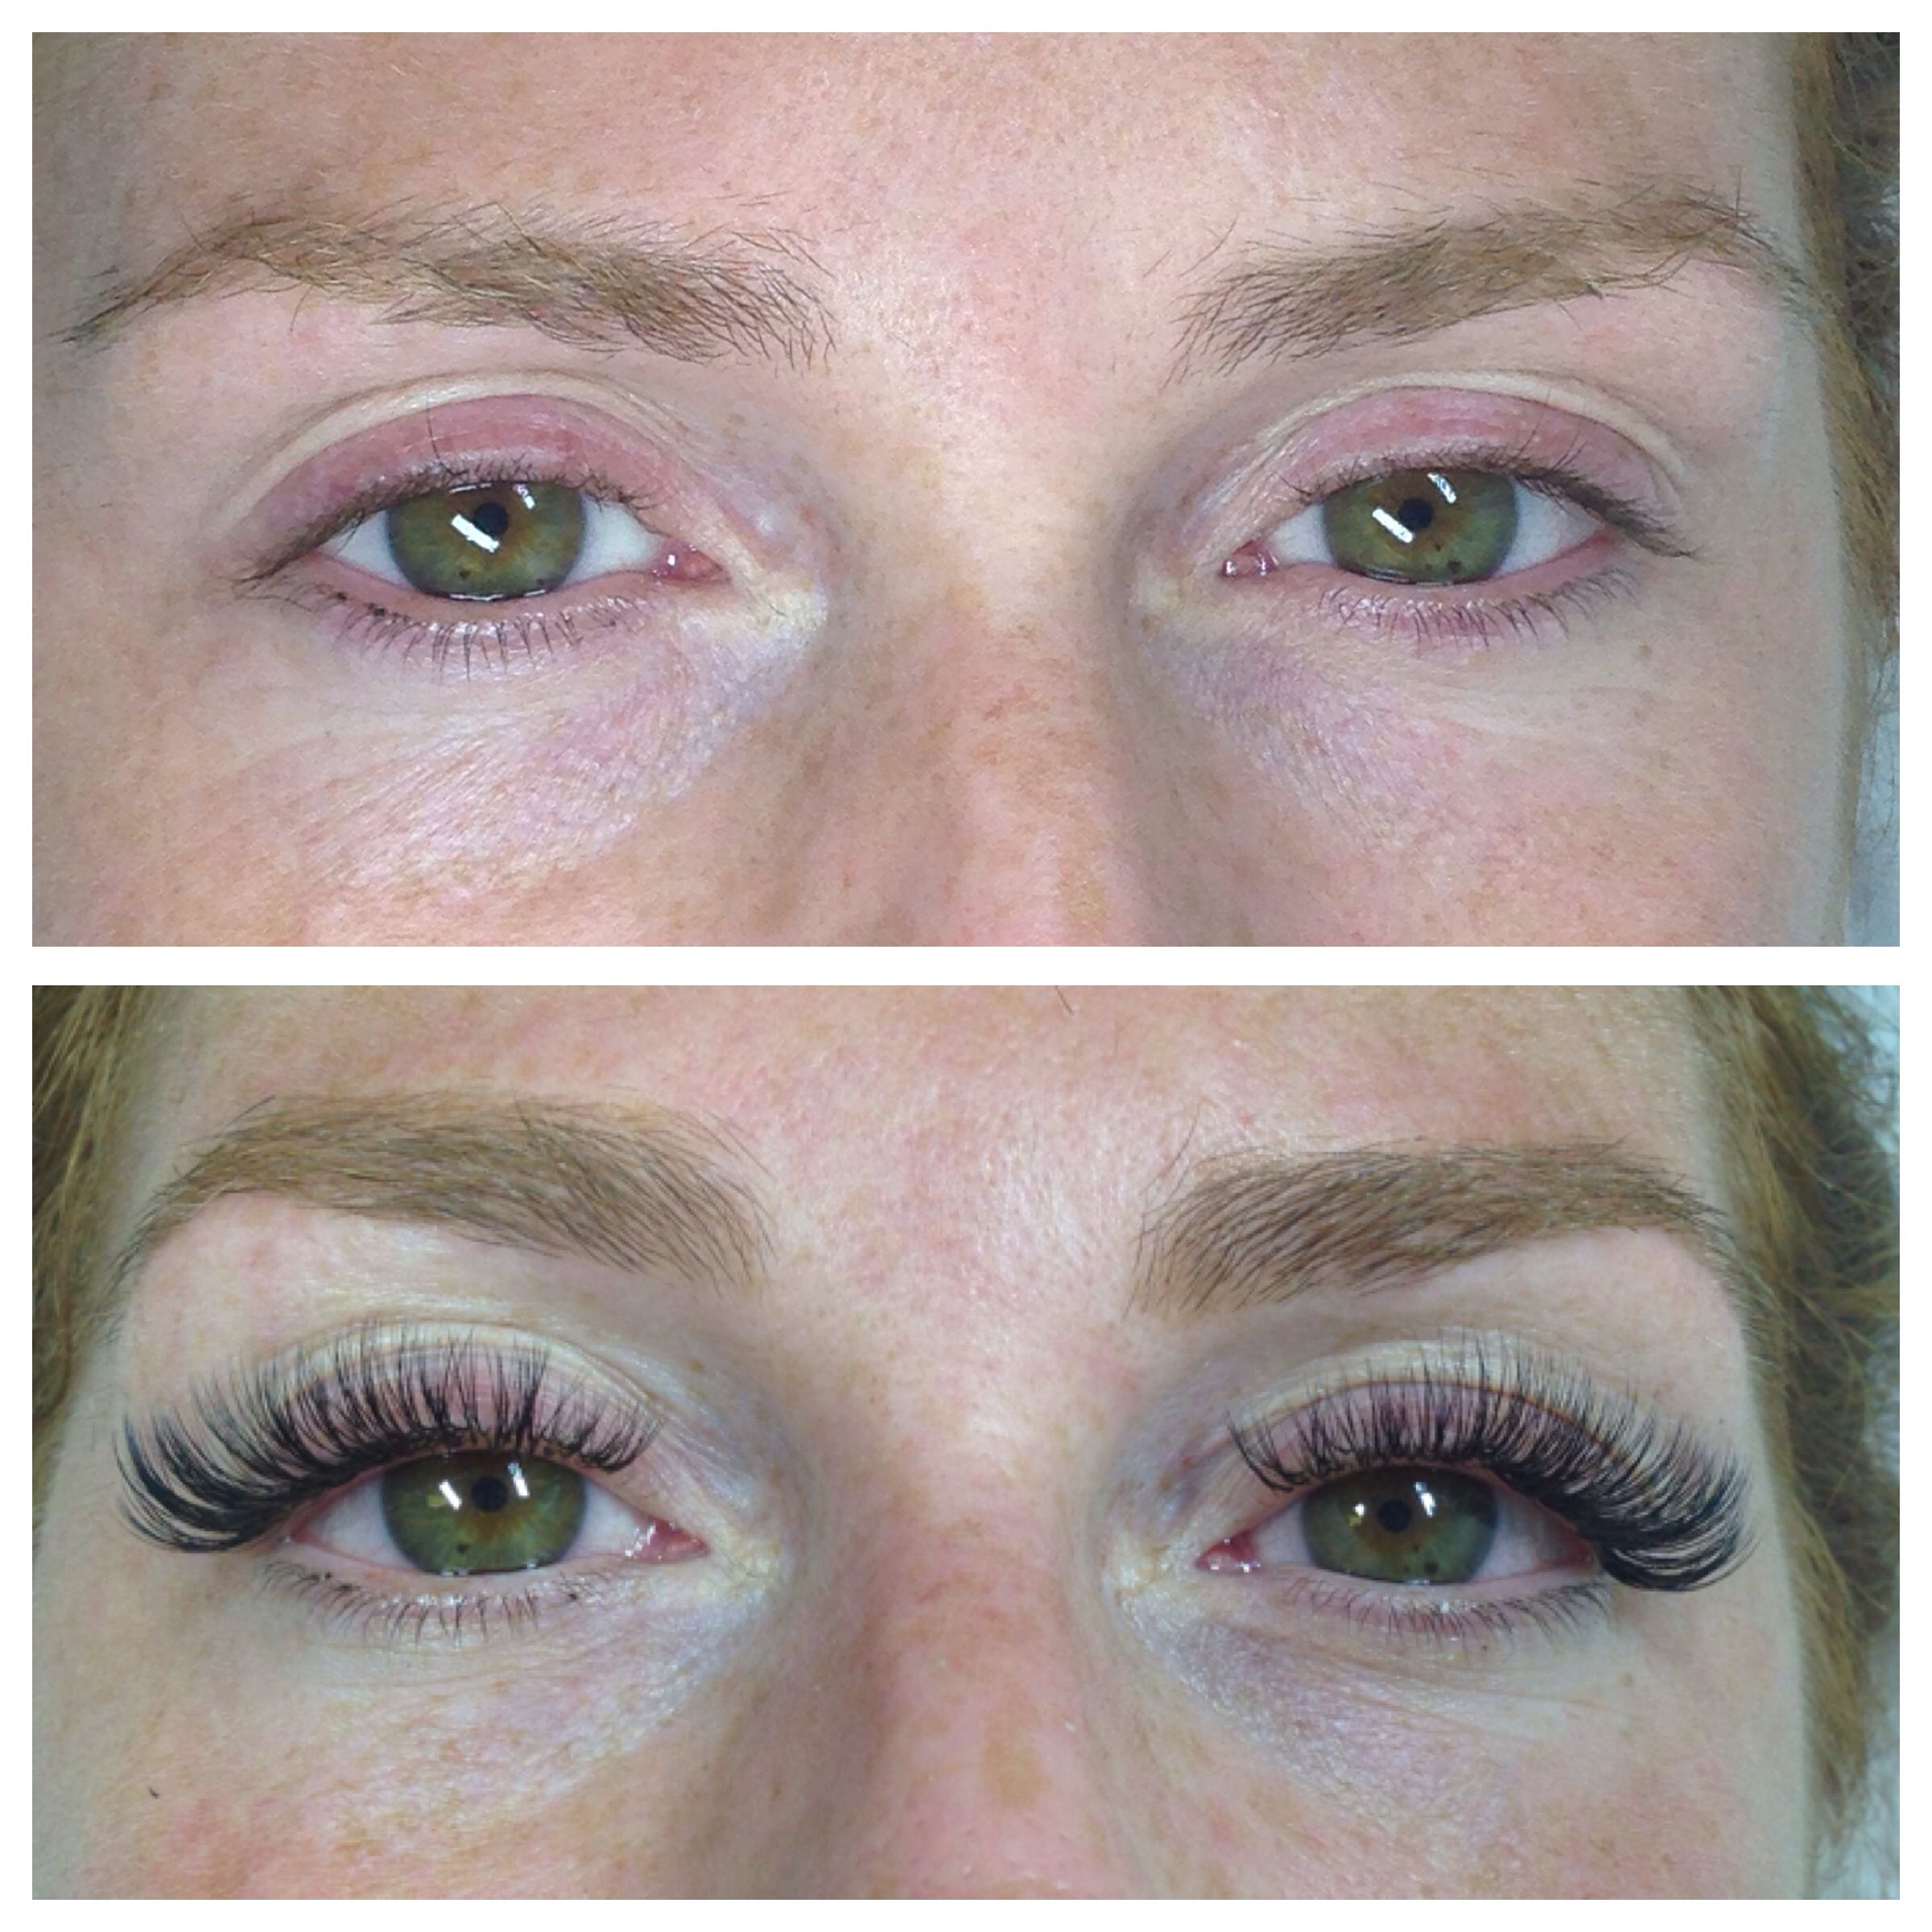 Eyelash extensions, before and after | M A K E U P ...